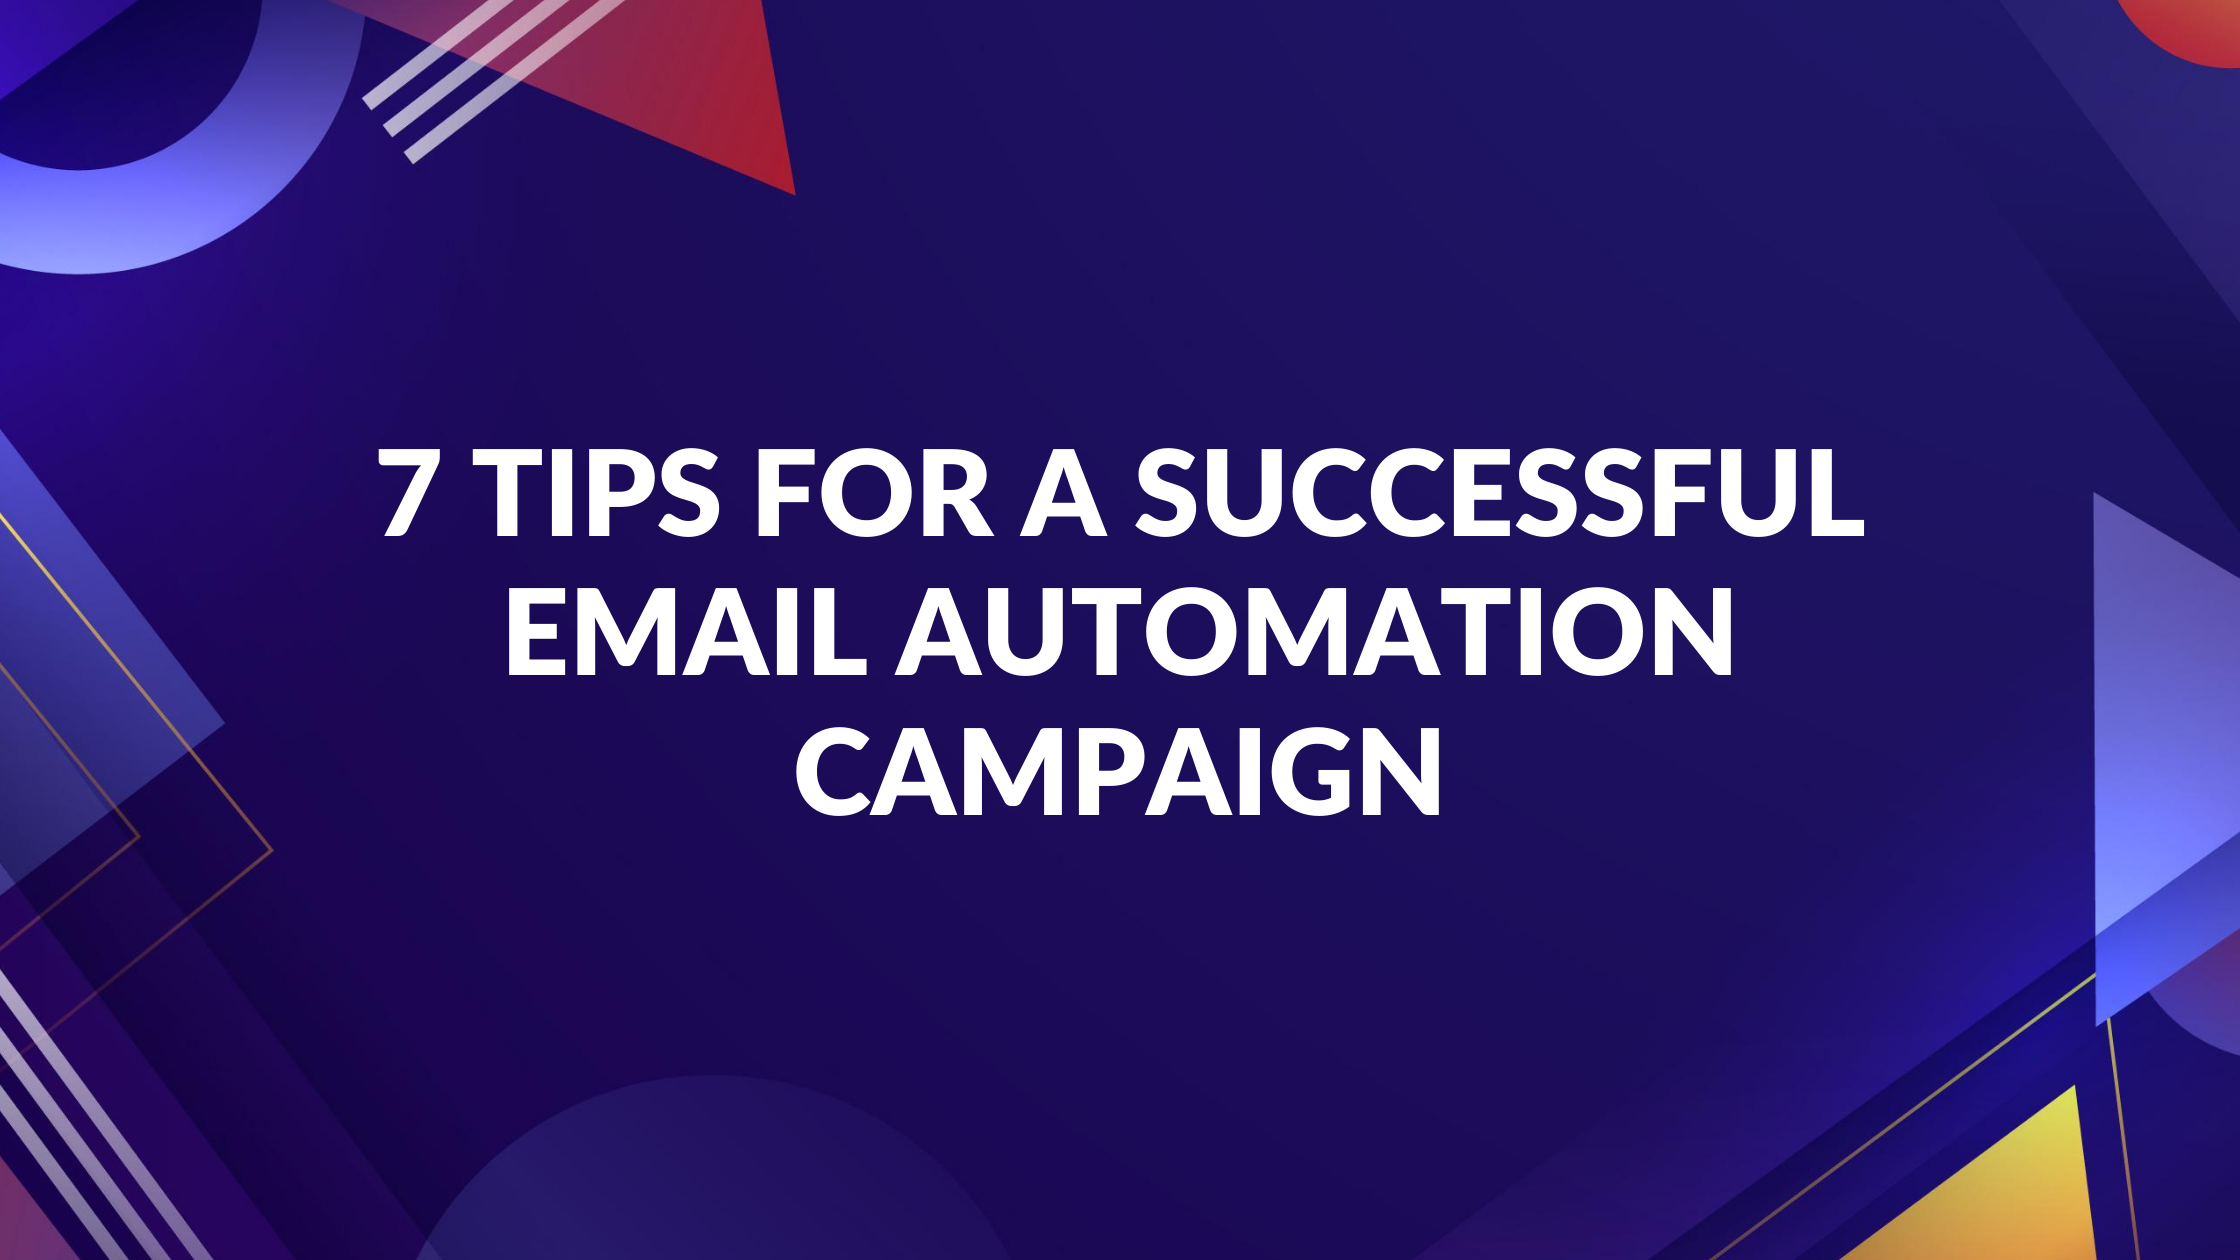 Successful email campaign examples, Examples of email marketing strategy, Email campaign tips, Email marketing content ideas, What are the elements of successful communication in email marketing